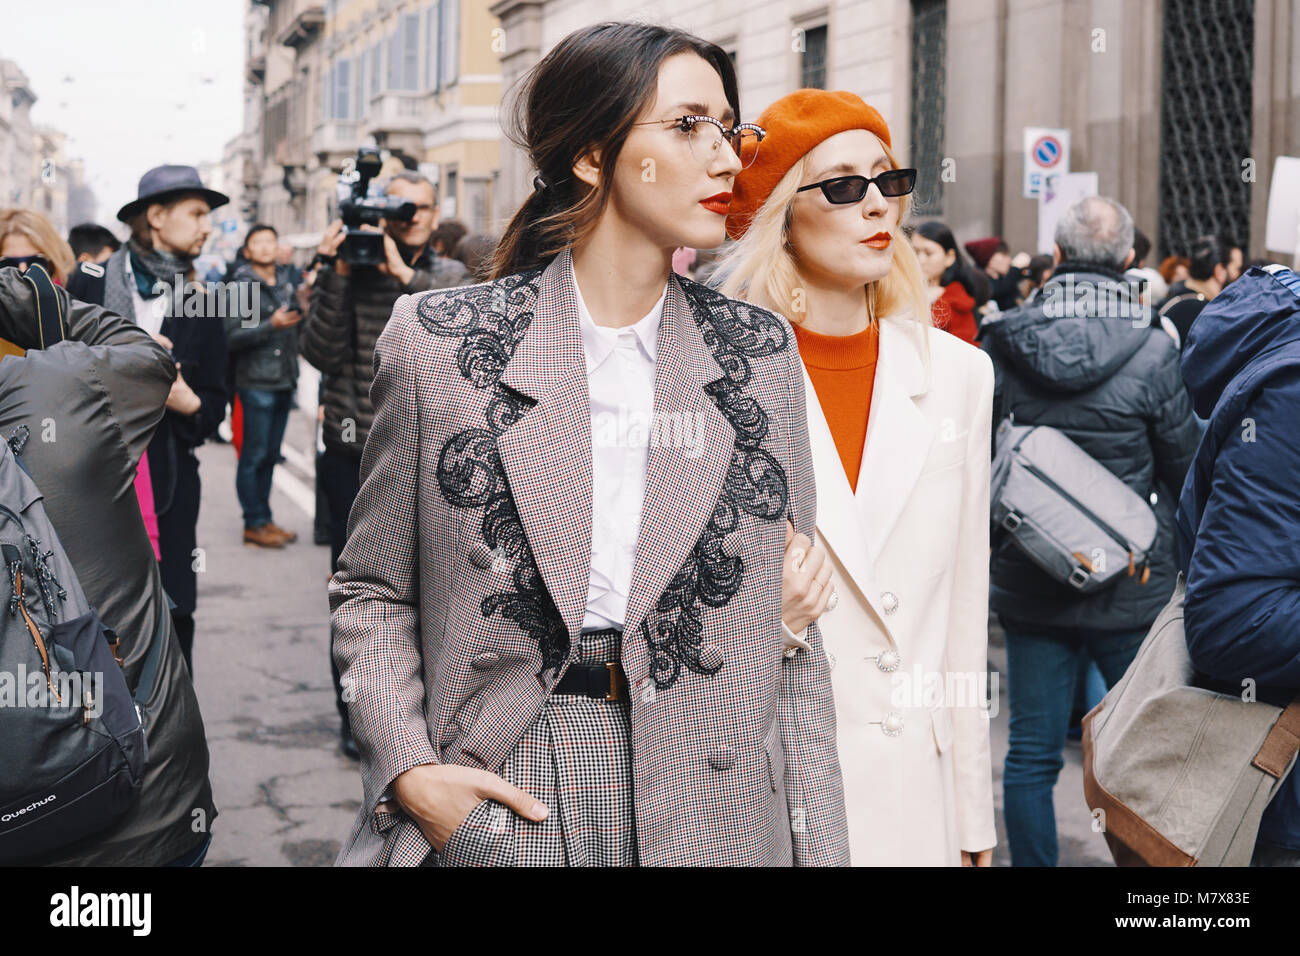 Milan, Italy - February 24, 2018: Fashion appearance of a fashionista with stylish clothing and accessories during - Stock Image